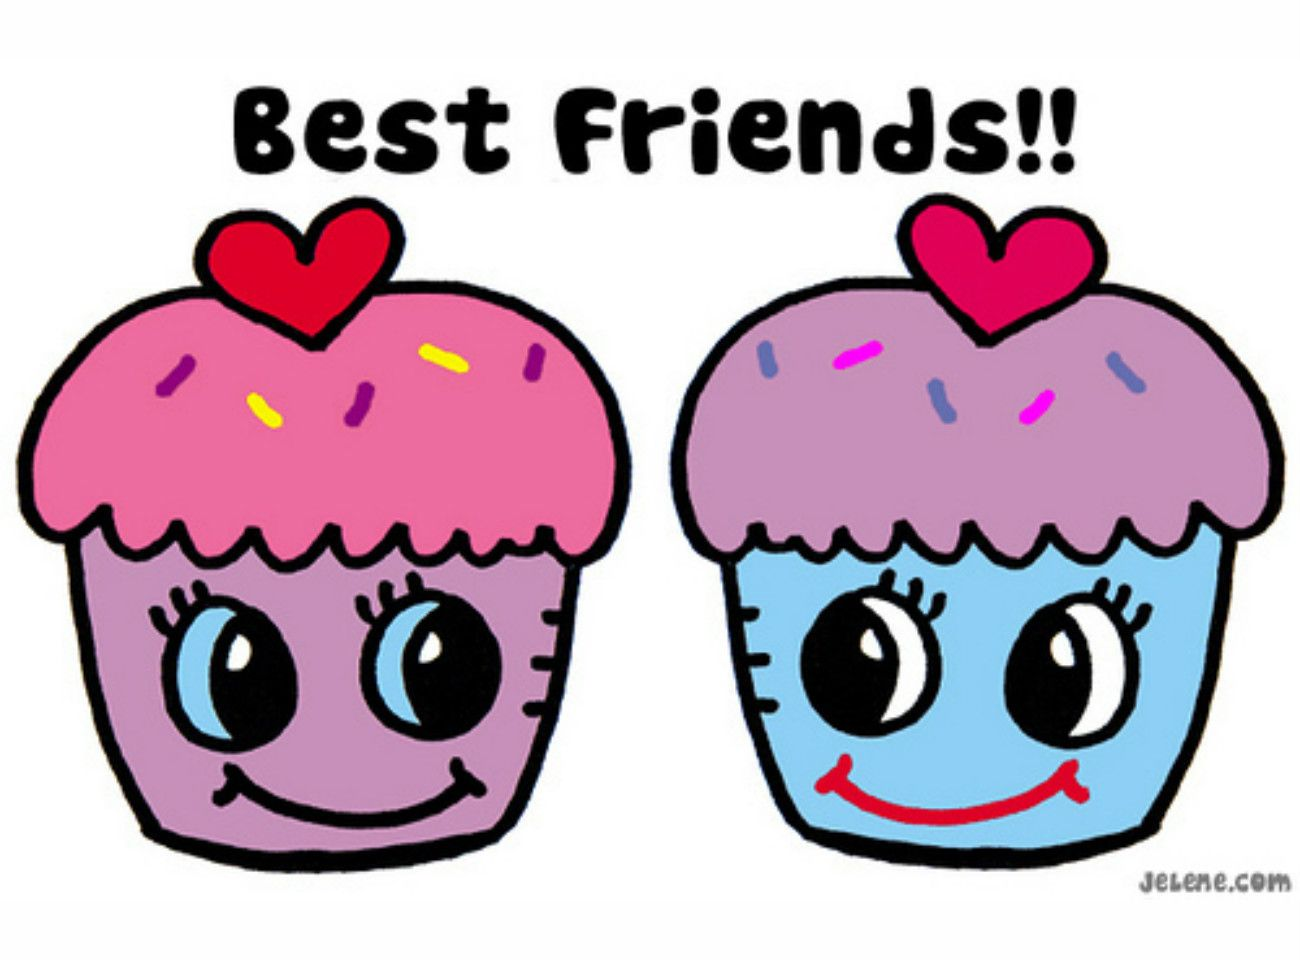 Who Is Your Best Friend Happy Views Love My Best Friend Best Friends Best Friend Day